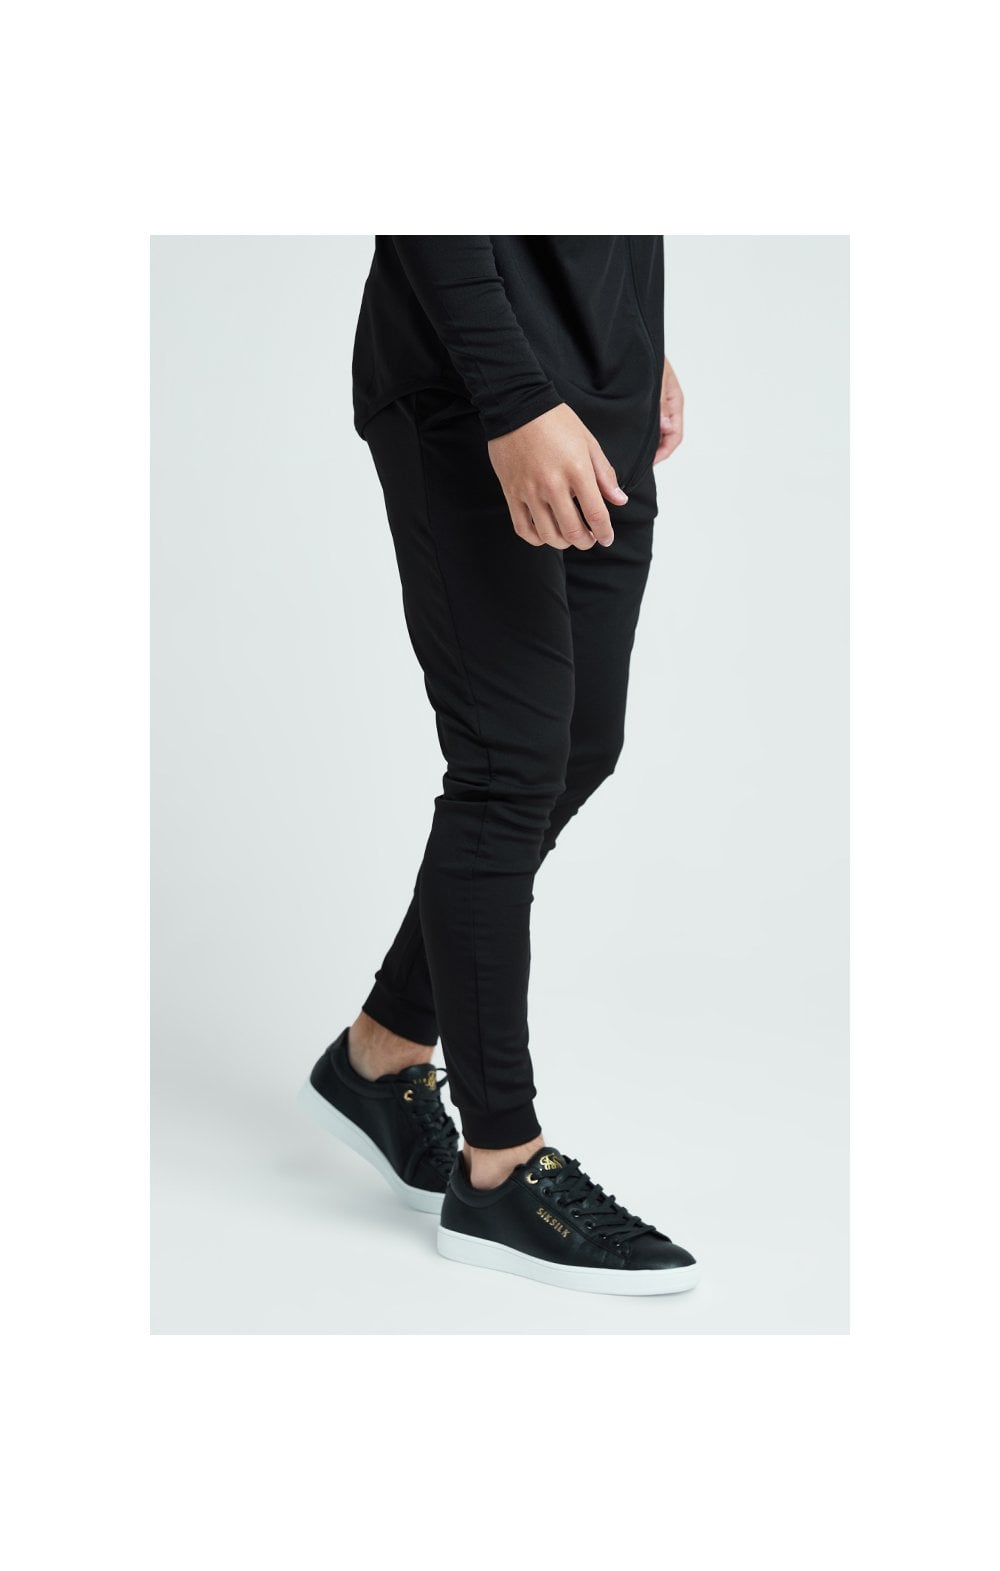 Illusive London Core Fitted Joggers - Black (3)